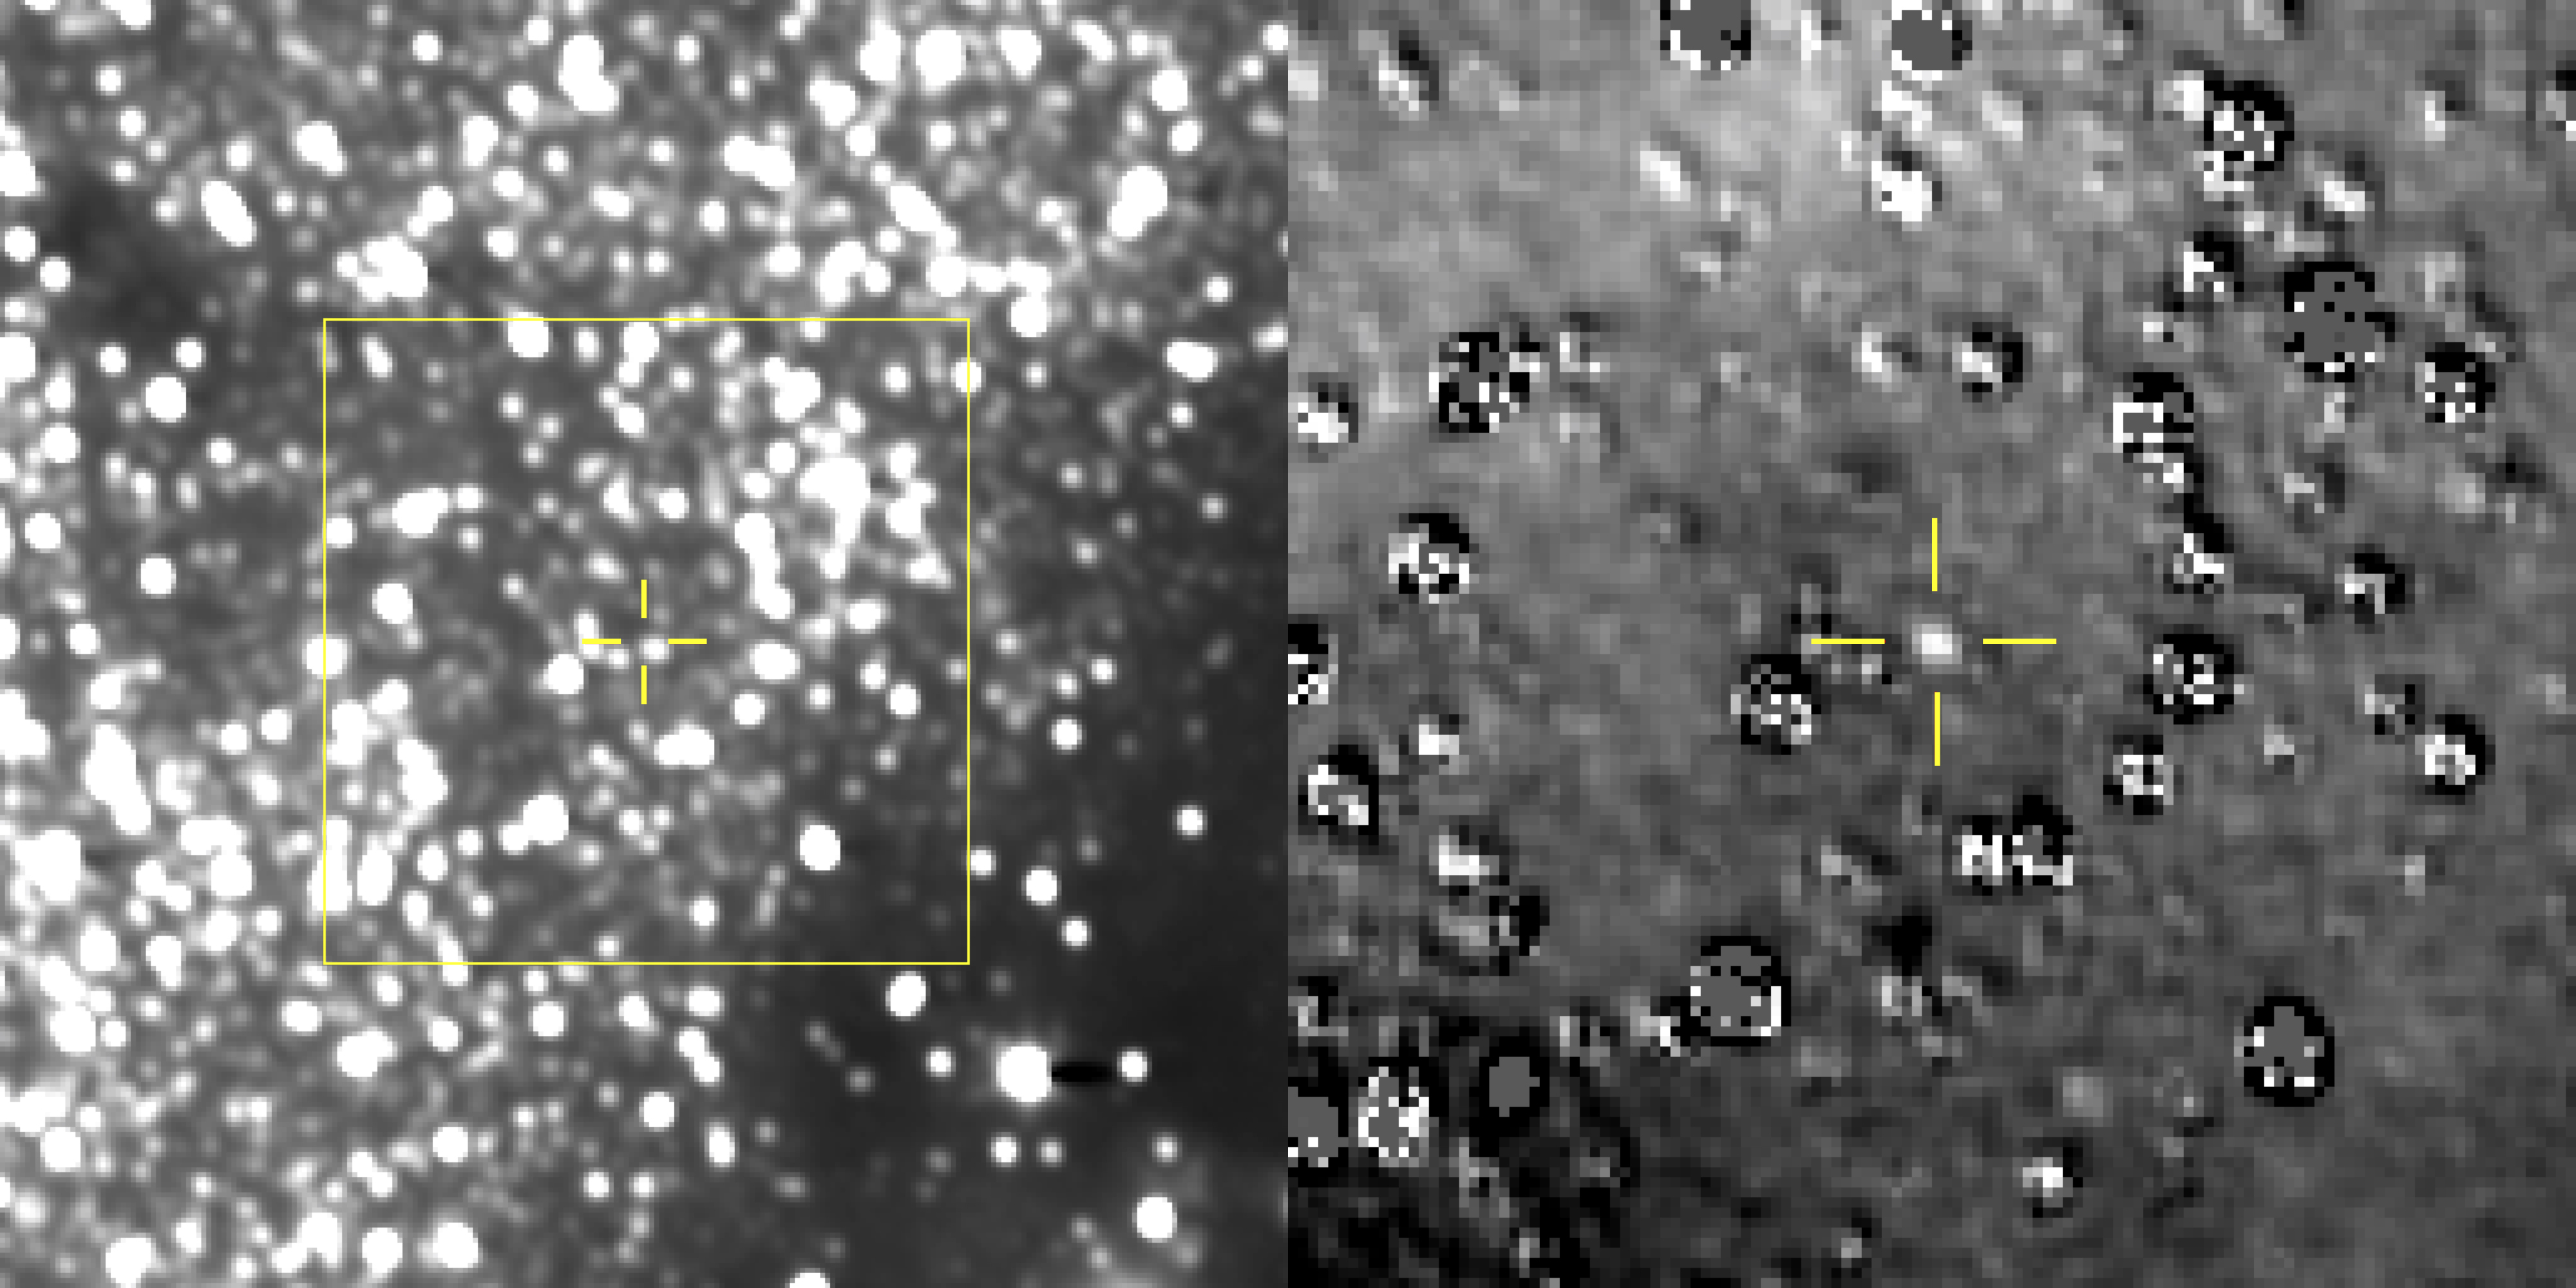 ultima thule-madrid Nh_ultima_thule_first_detection_v3